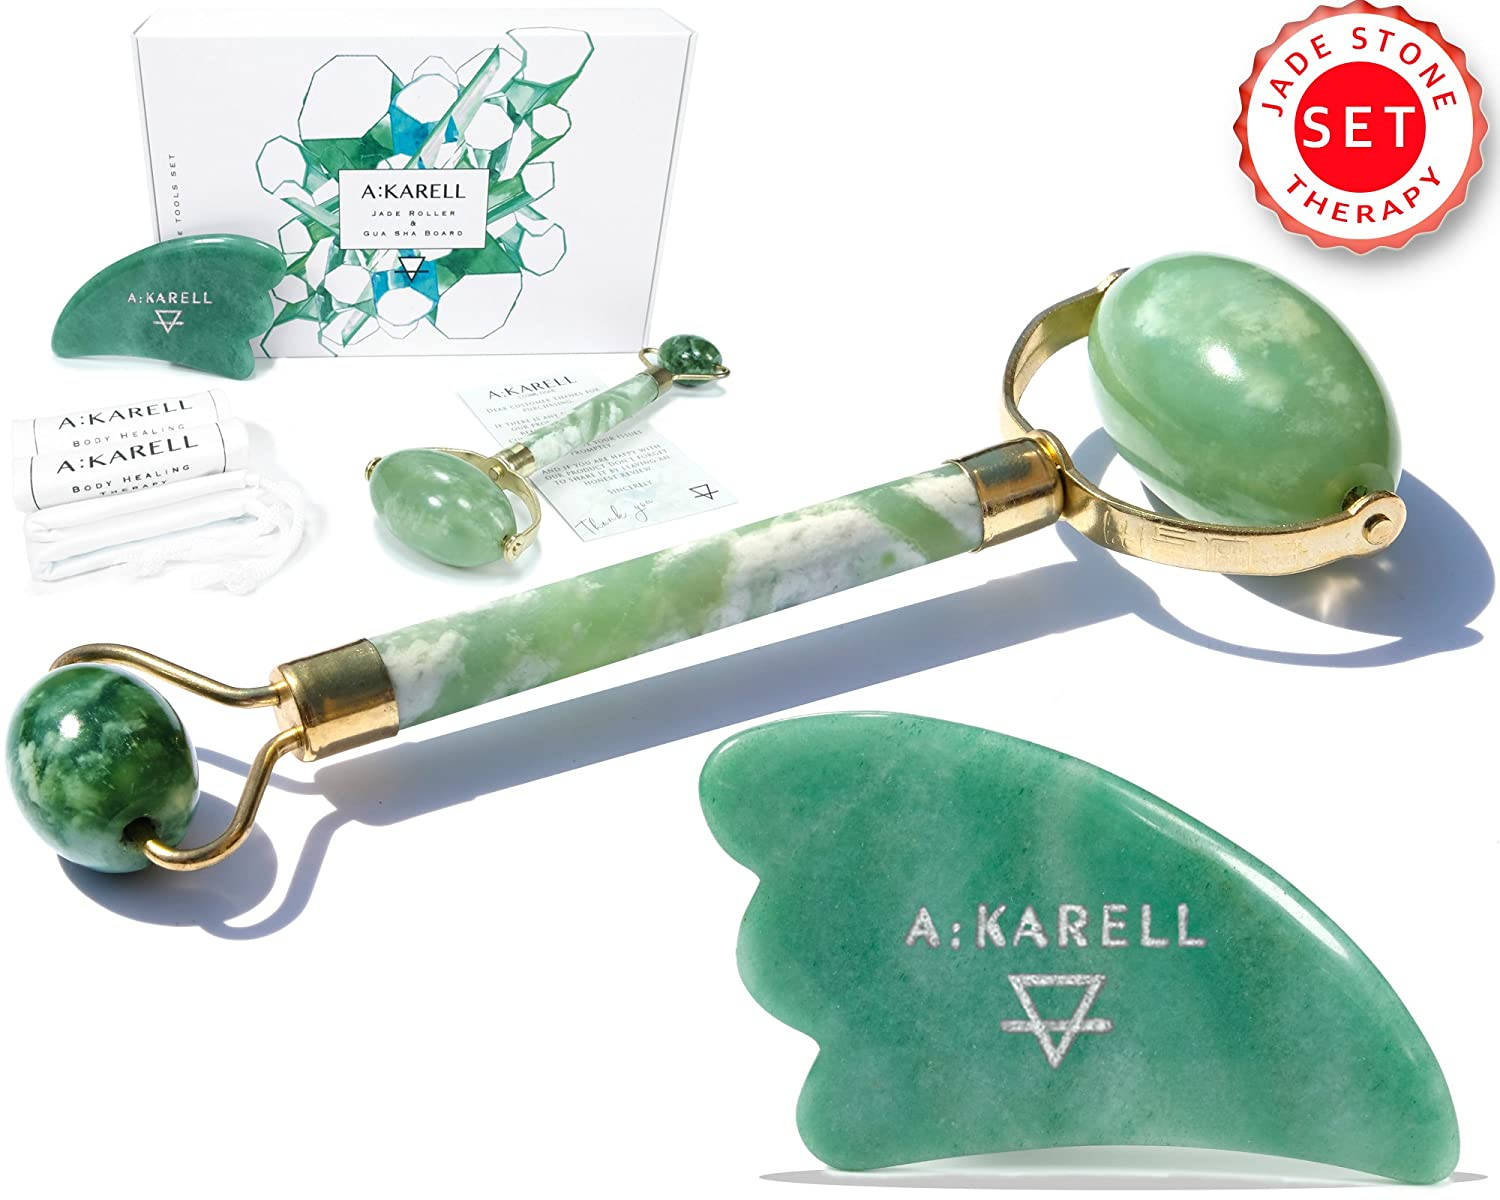 Akarell JADE ROLLER AND GUA SHA SET 100% Real Jade Stone Anti Aging Skincare Therapy Tool Jade Facial Roller Depuffing Anti-Wrinkle Treatment Facial Beauty Tool Jade Roller for Face De Puffer Massager